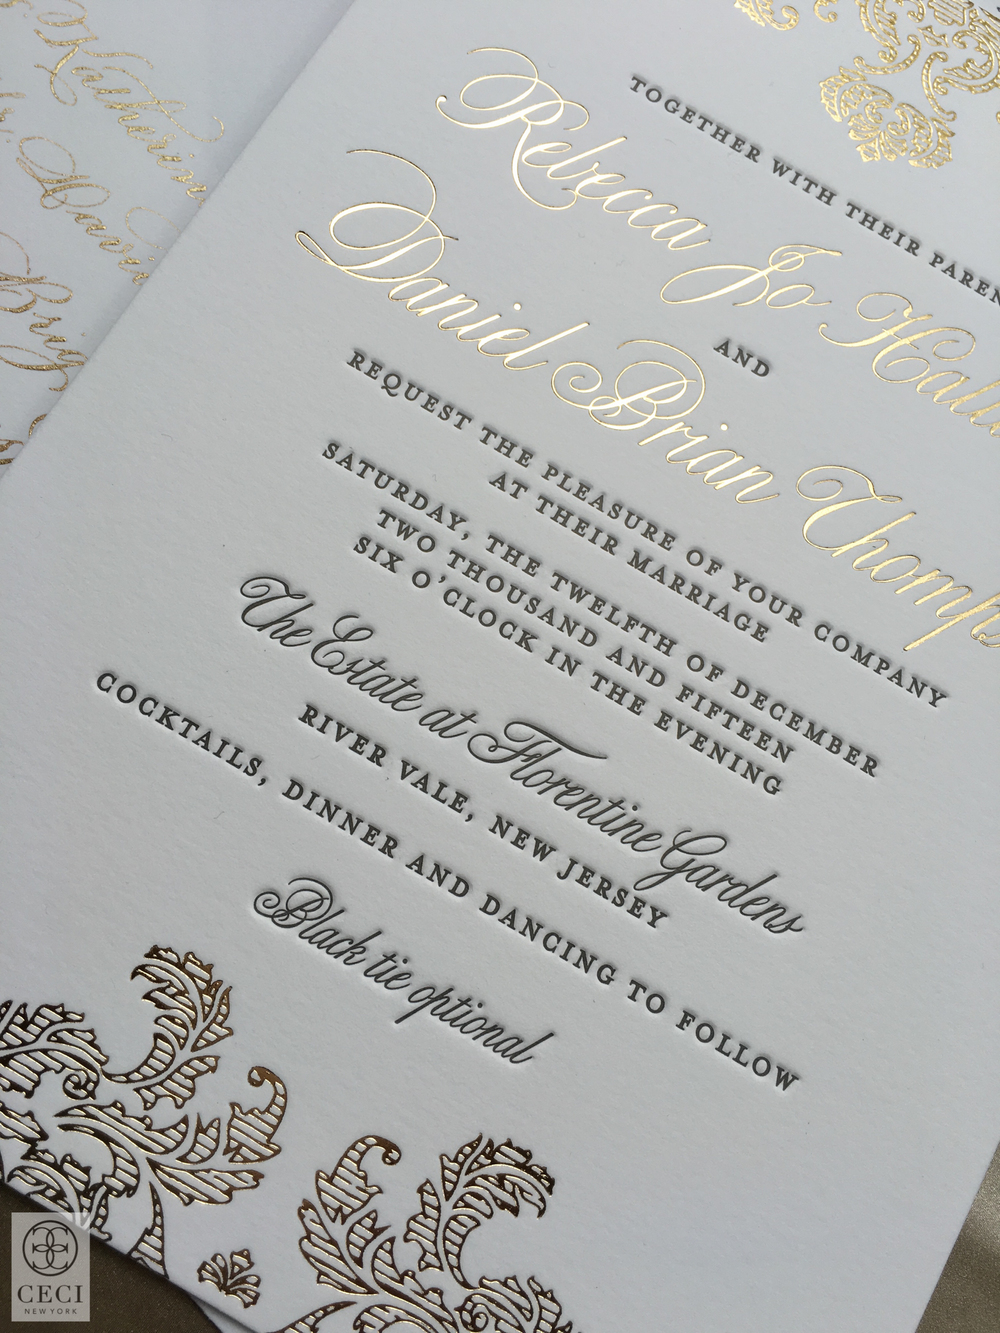 Ceci_New_York_New_Jersey_Invitations_Wedding_New_York_Elegance_Silver_Blue_Letterpress_Deco_Classic_Foil_Stamping_Custom_Couture_Personalized-55.jpg